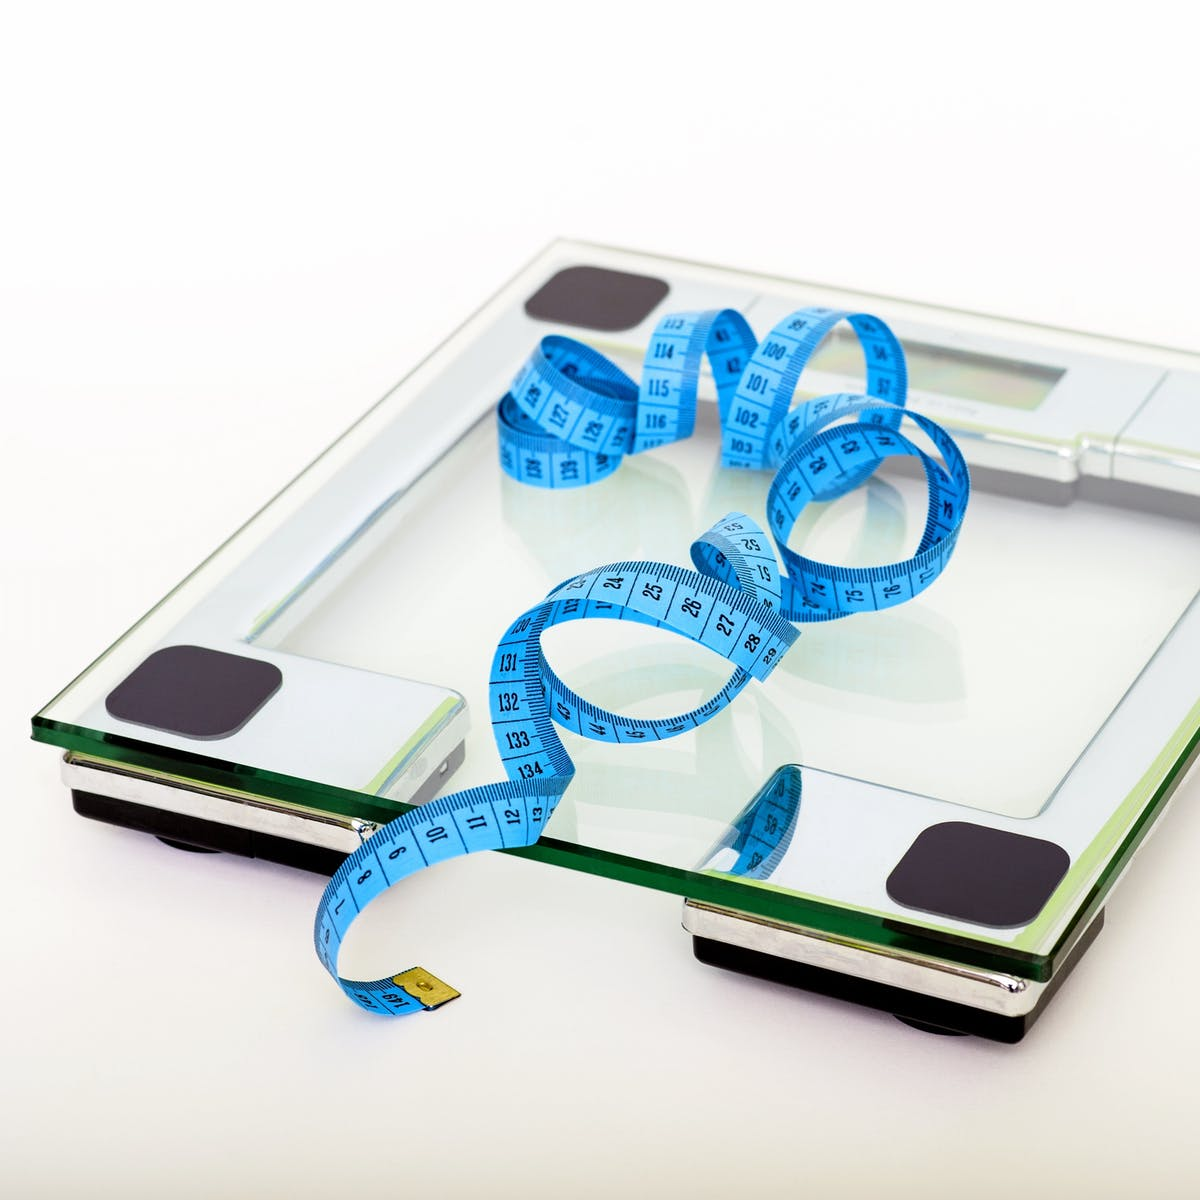 These Bathroom Scales Will Help You Meet Your Goals